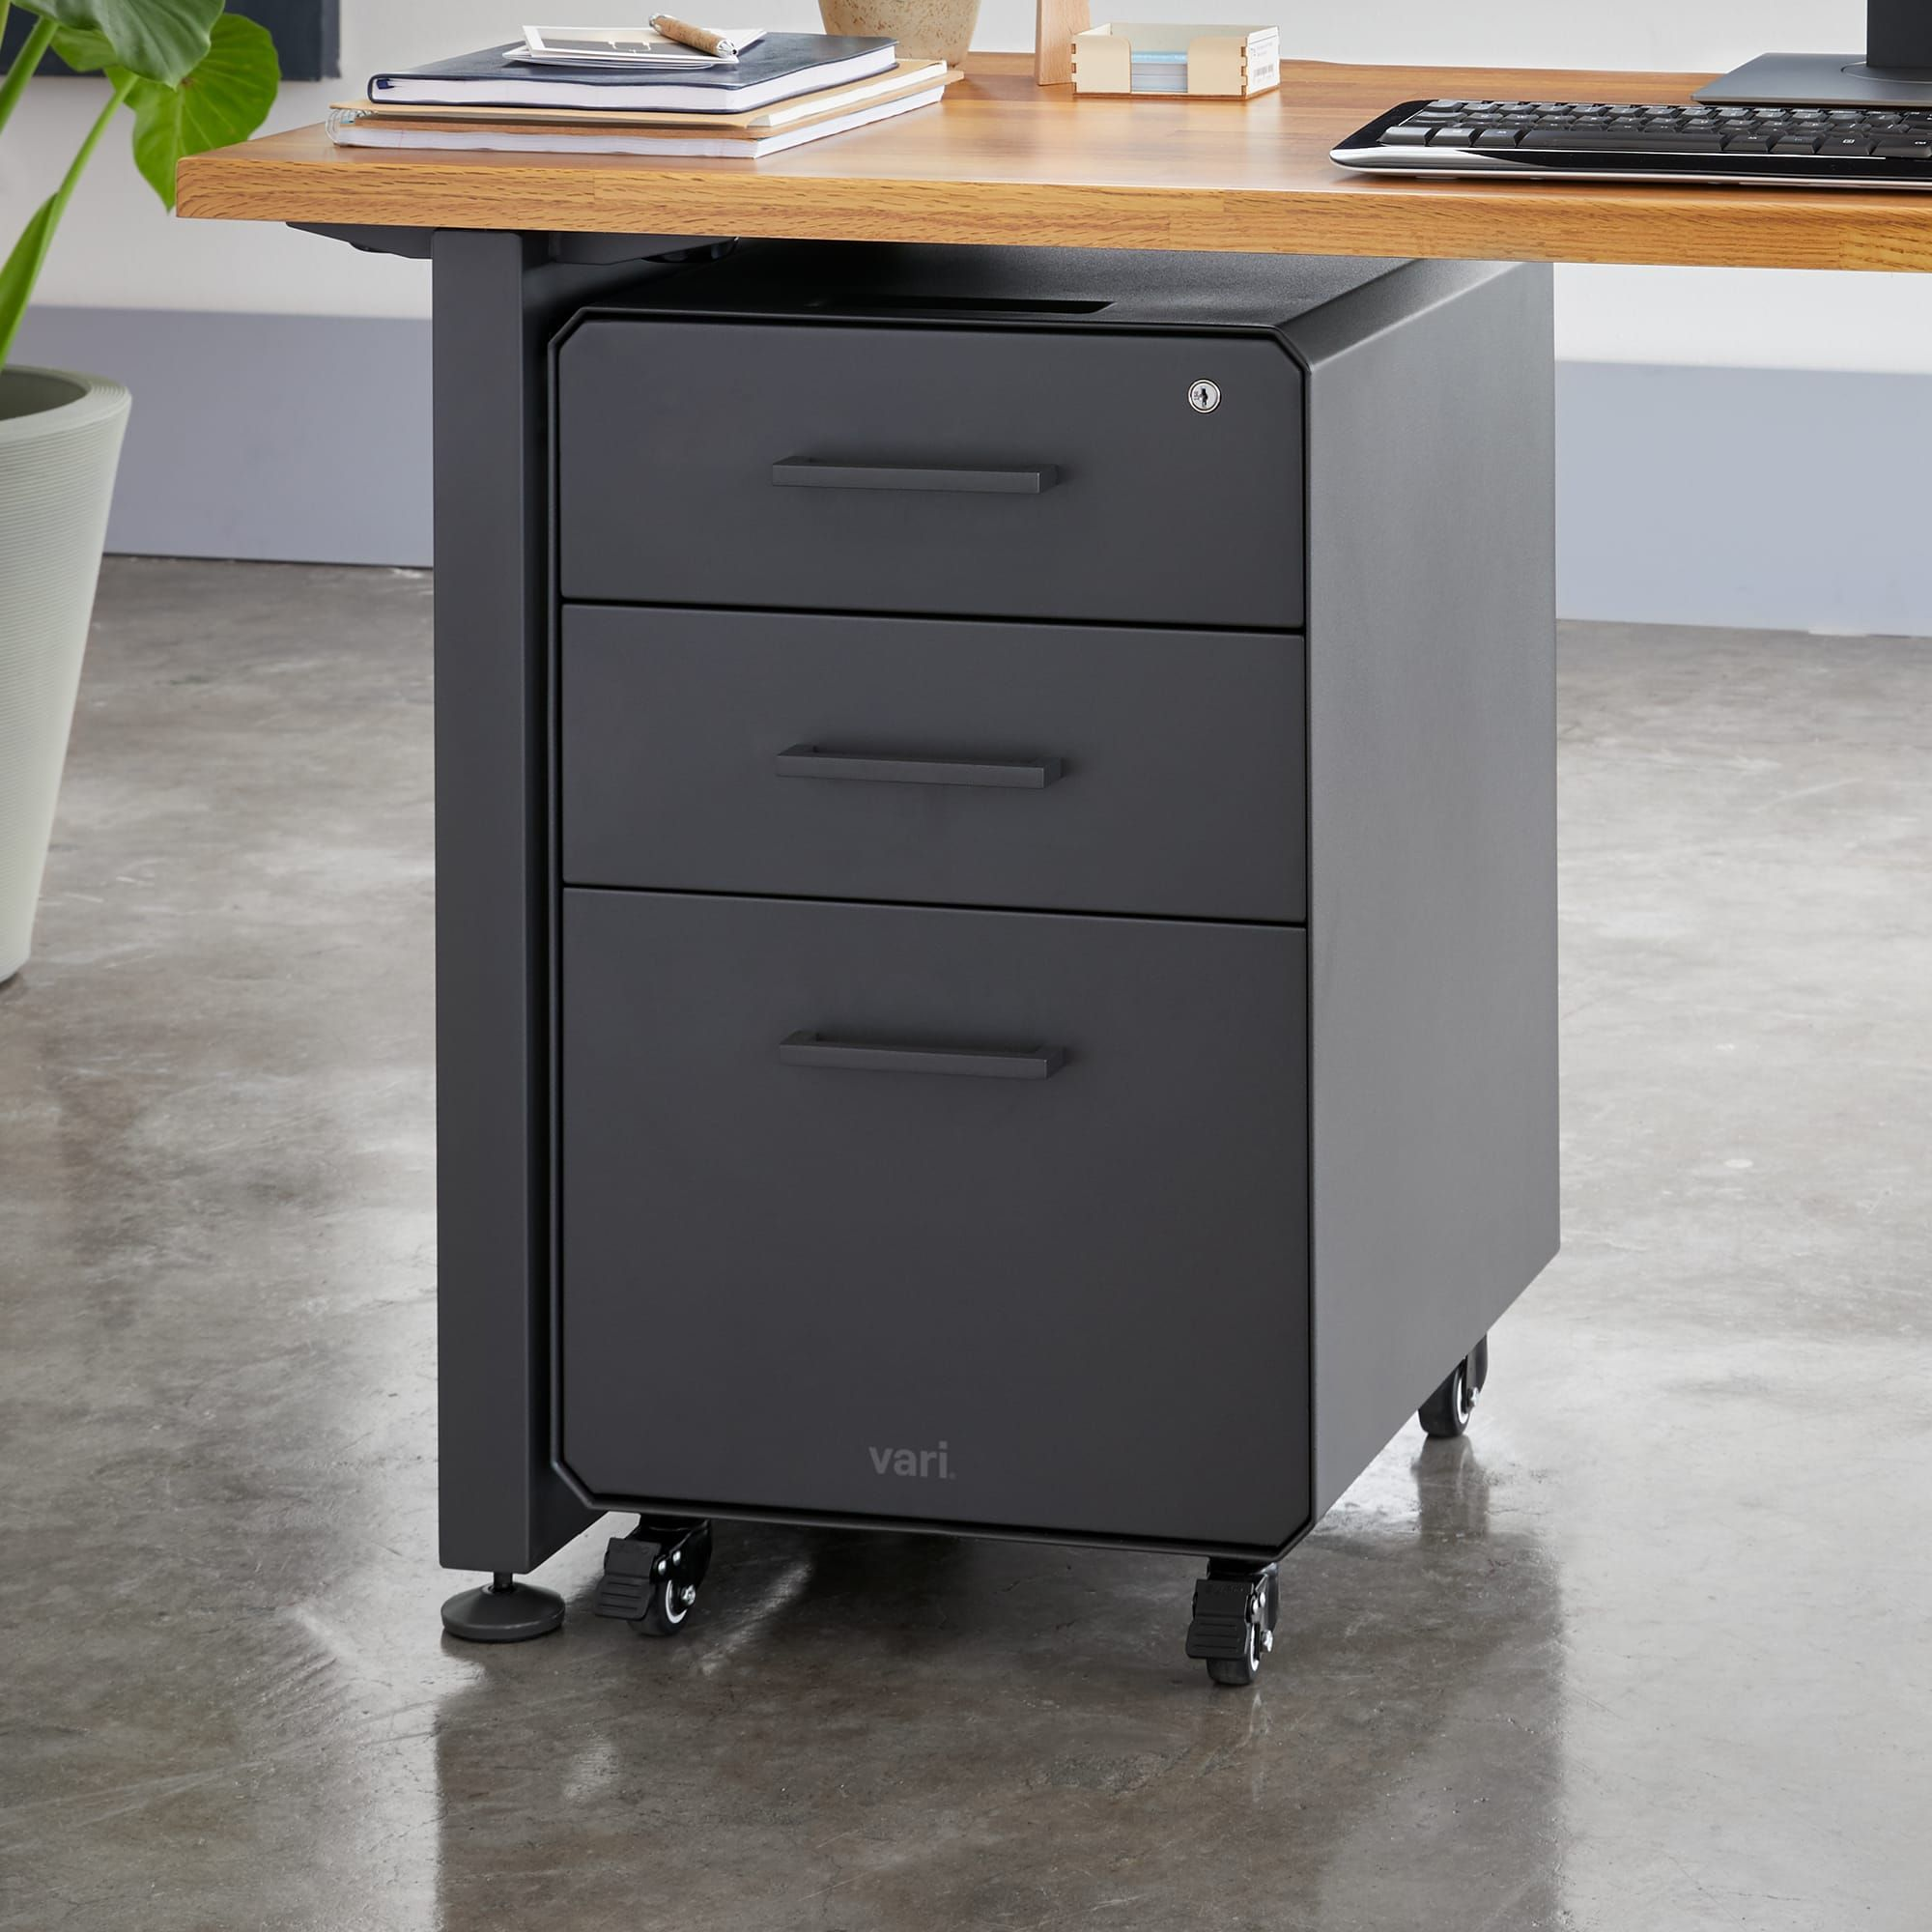 File Cabinet Standing Desk Accessories Vari In 2020 Filing Cabinet Standing Desk Accessories Cabinet